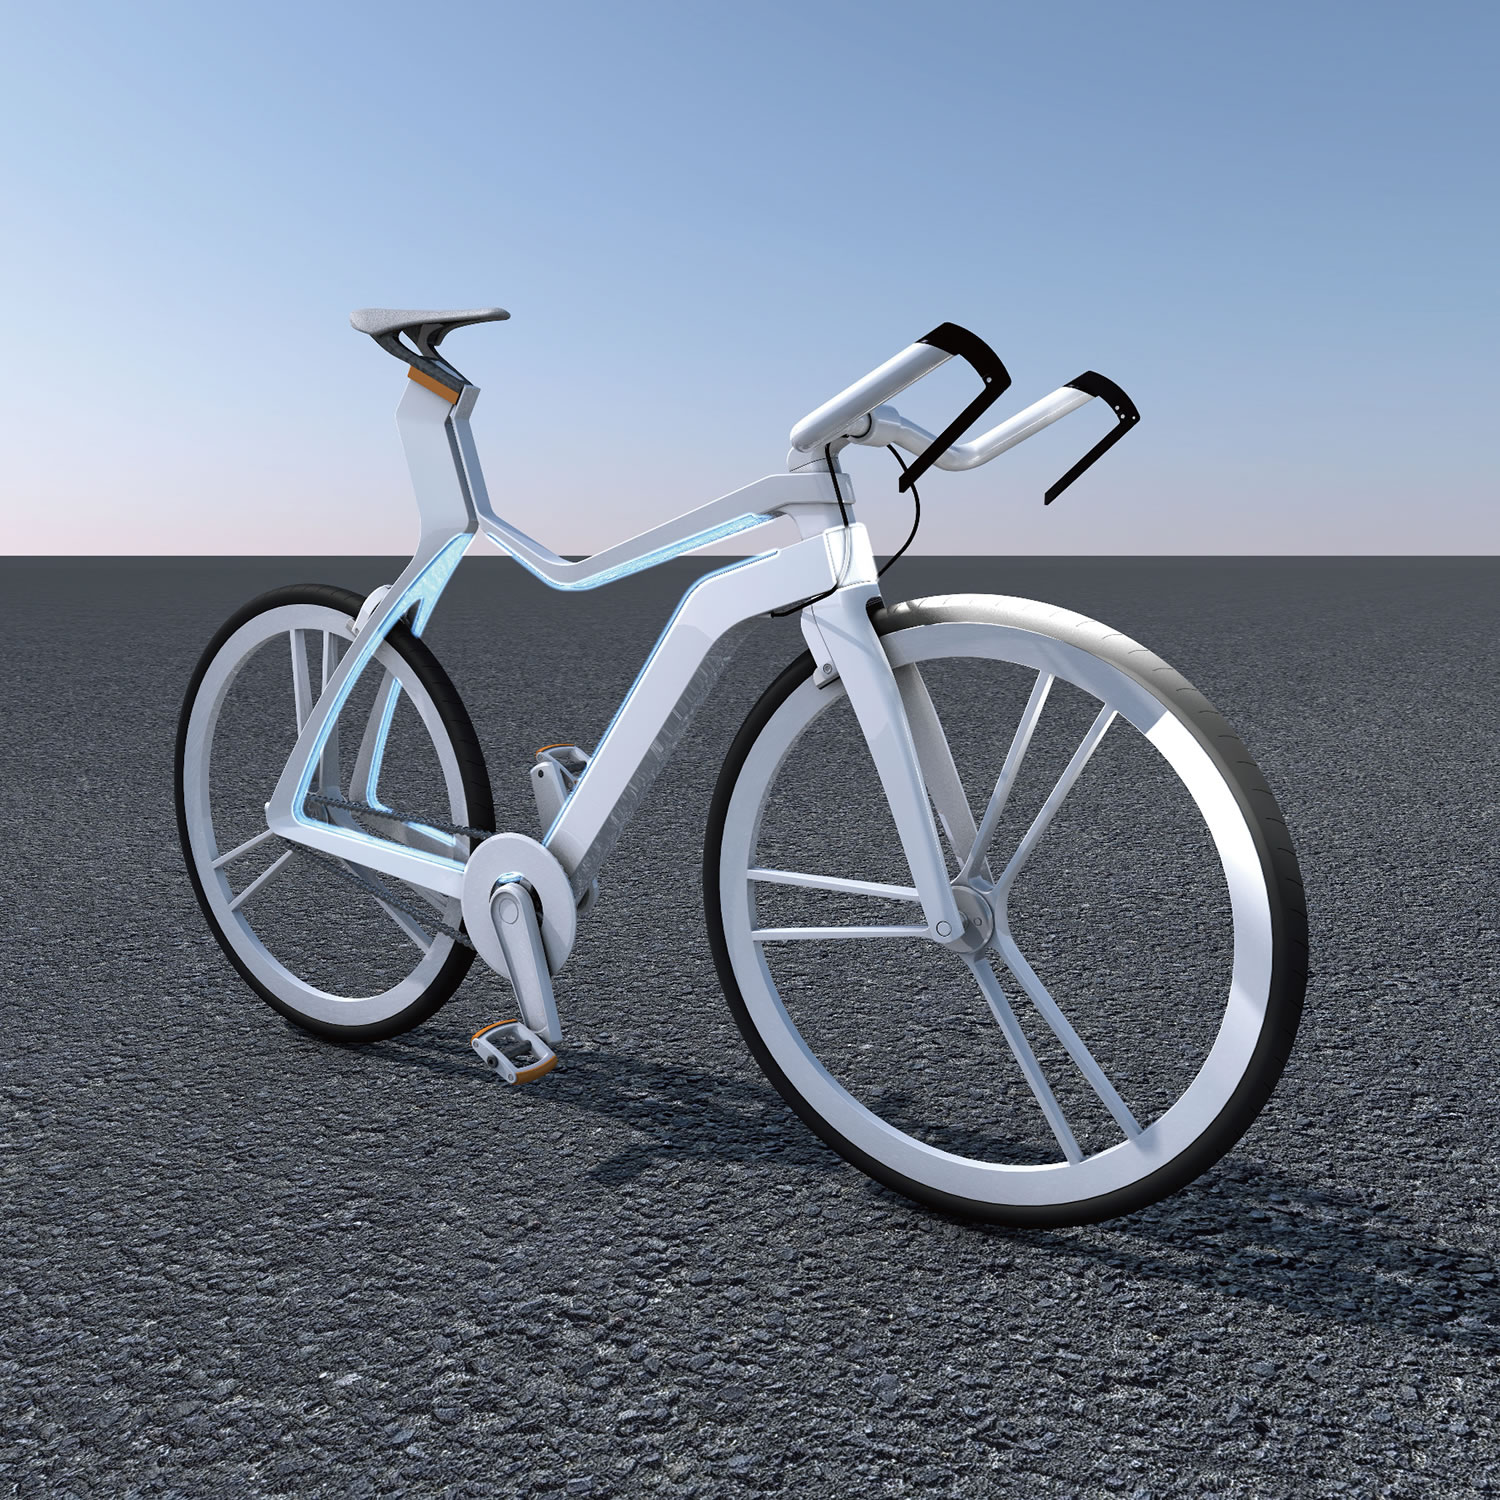 SILENCE, A BIKE WITH SENSORY ORGAN Electric Bicycle by YI-SIN HUANG